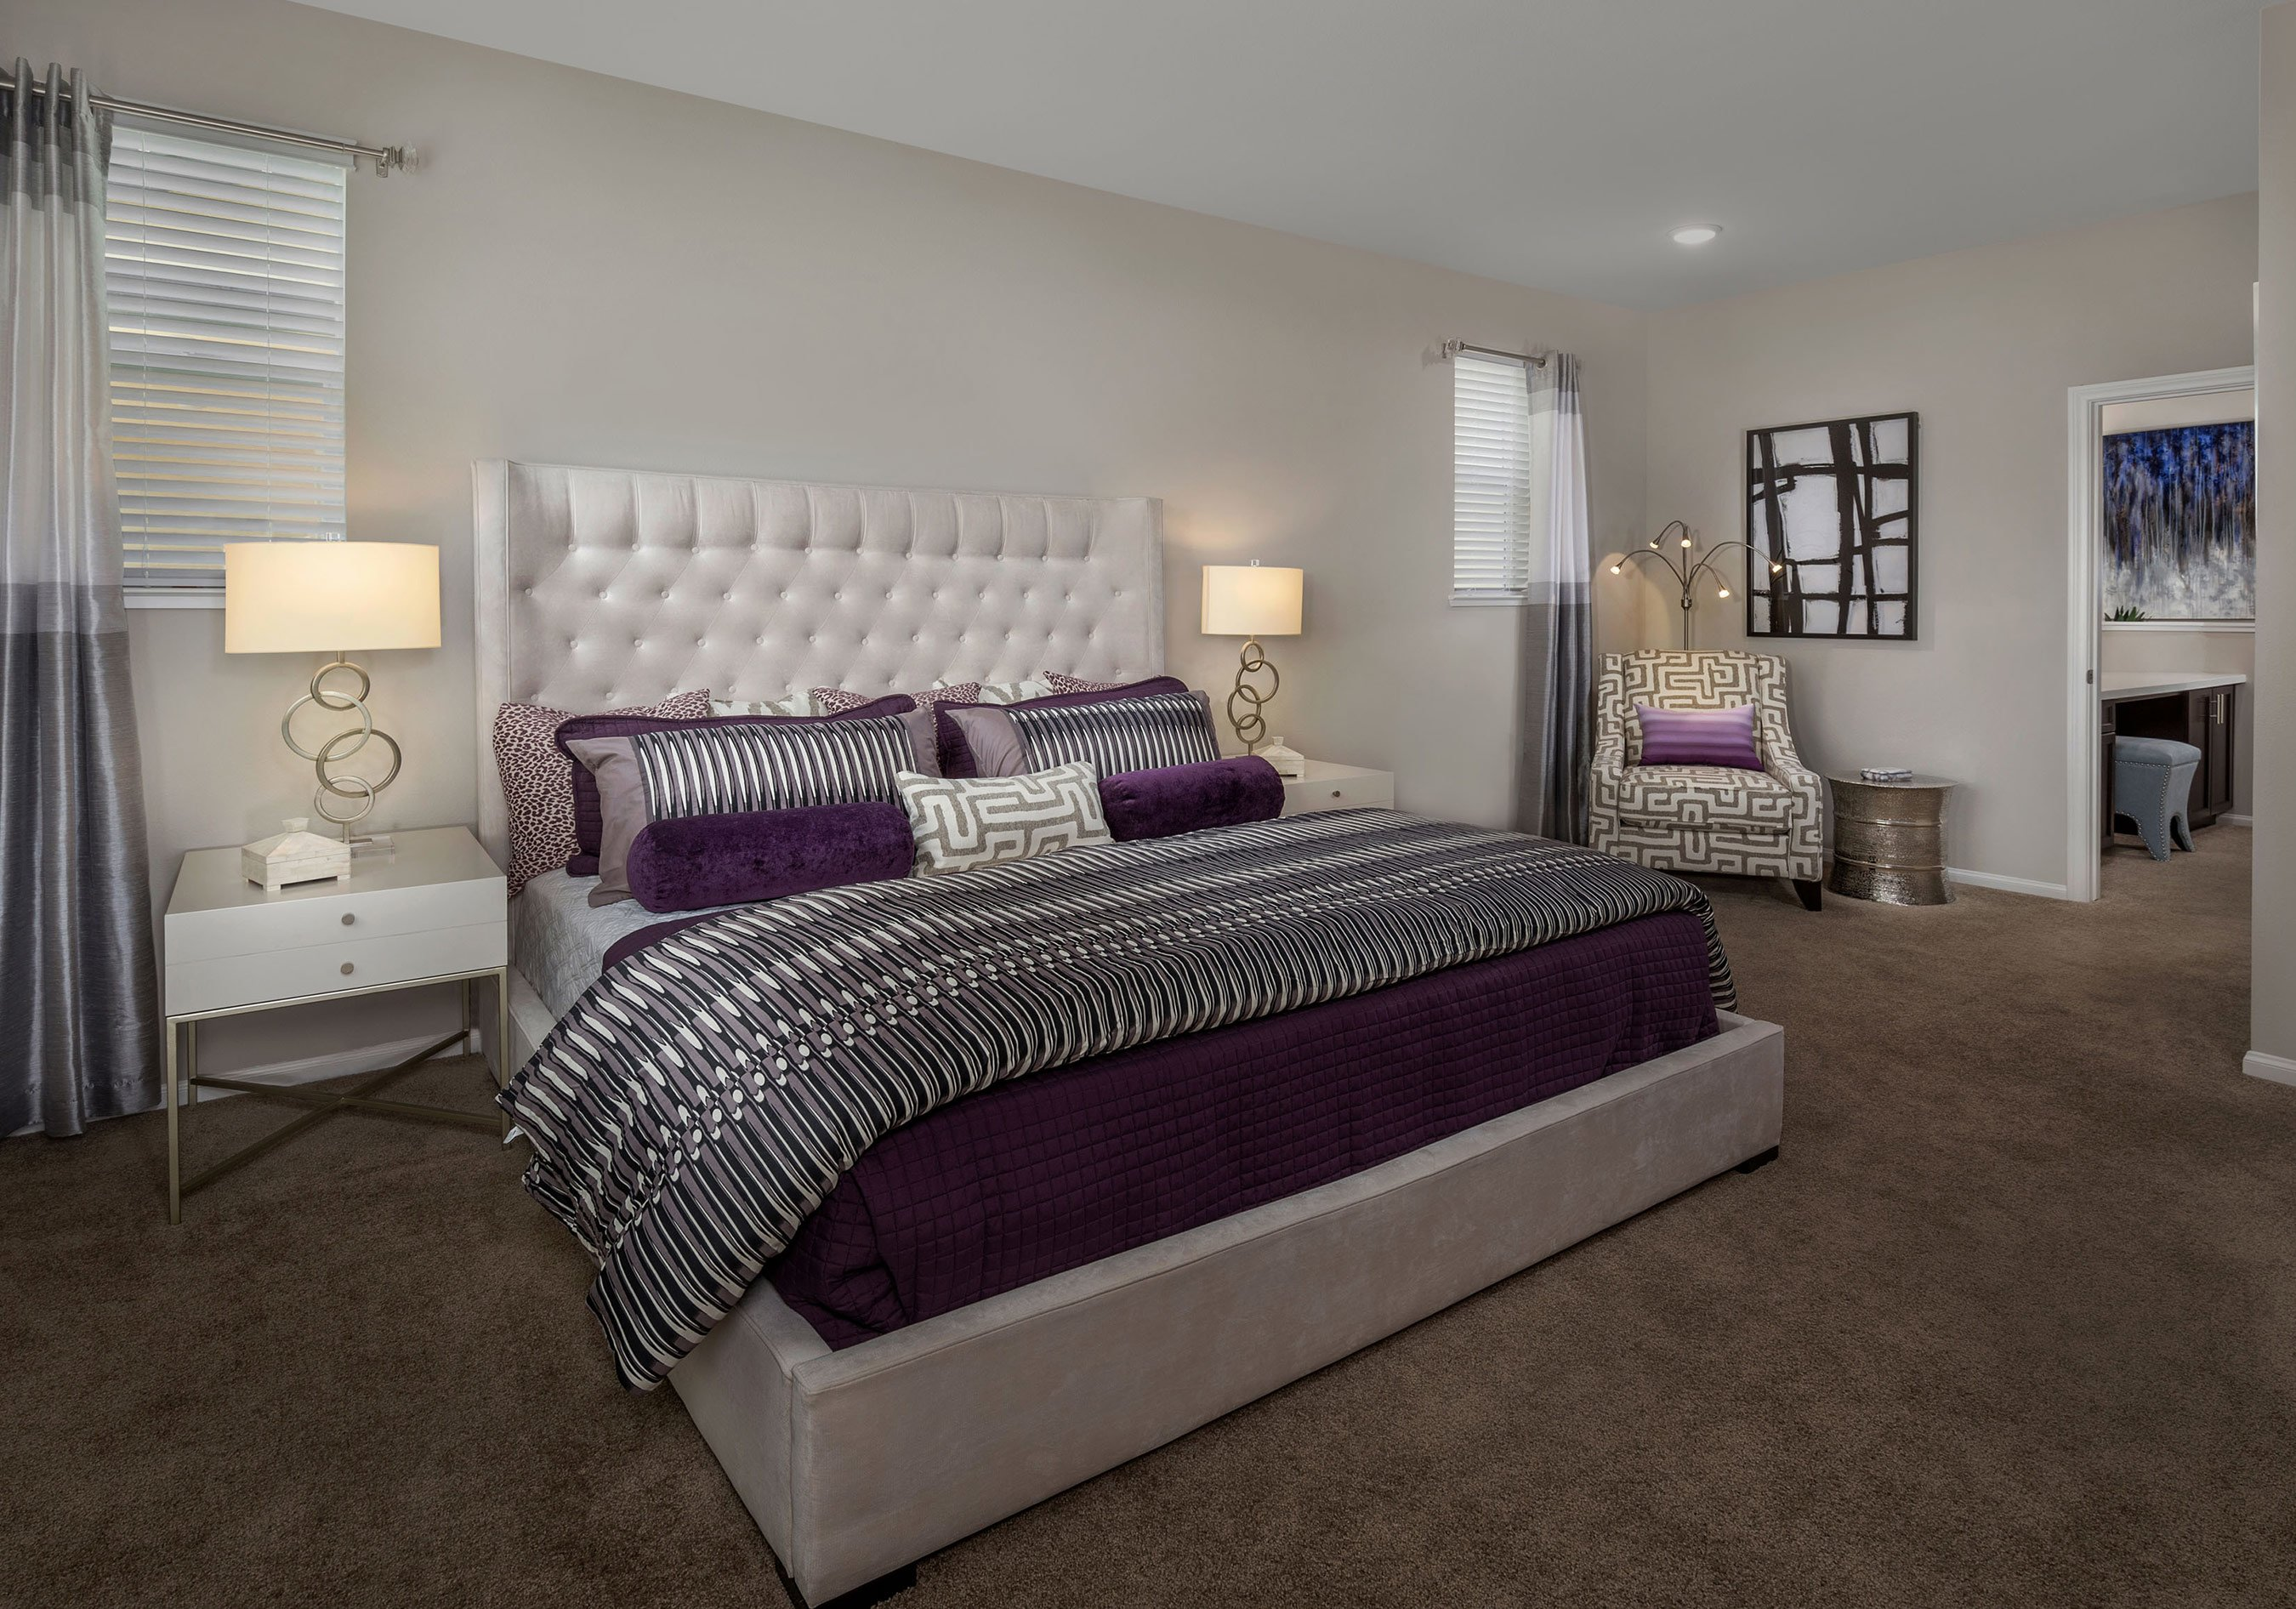 ... Harvest At Damonte Ranch Apartments   Bedroom With Purple Sheets